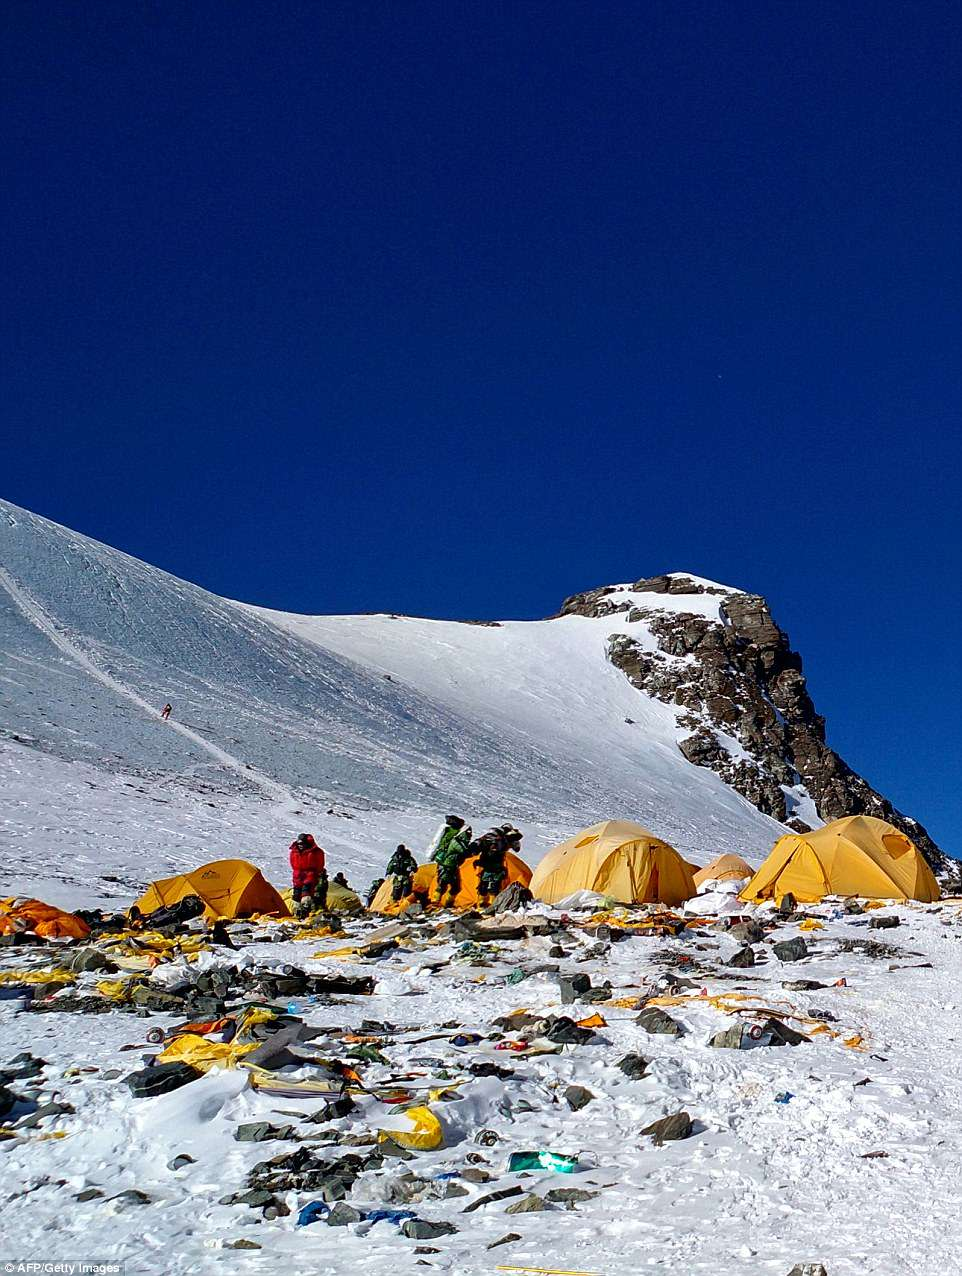 As Everest was turned into the highest mountain garbage, Everest, which, garbage, climbers, dollars, around, hire, which, the top, which, climbing, height, this, people, to, back, power, tents, also